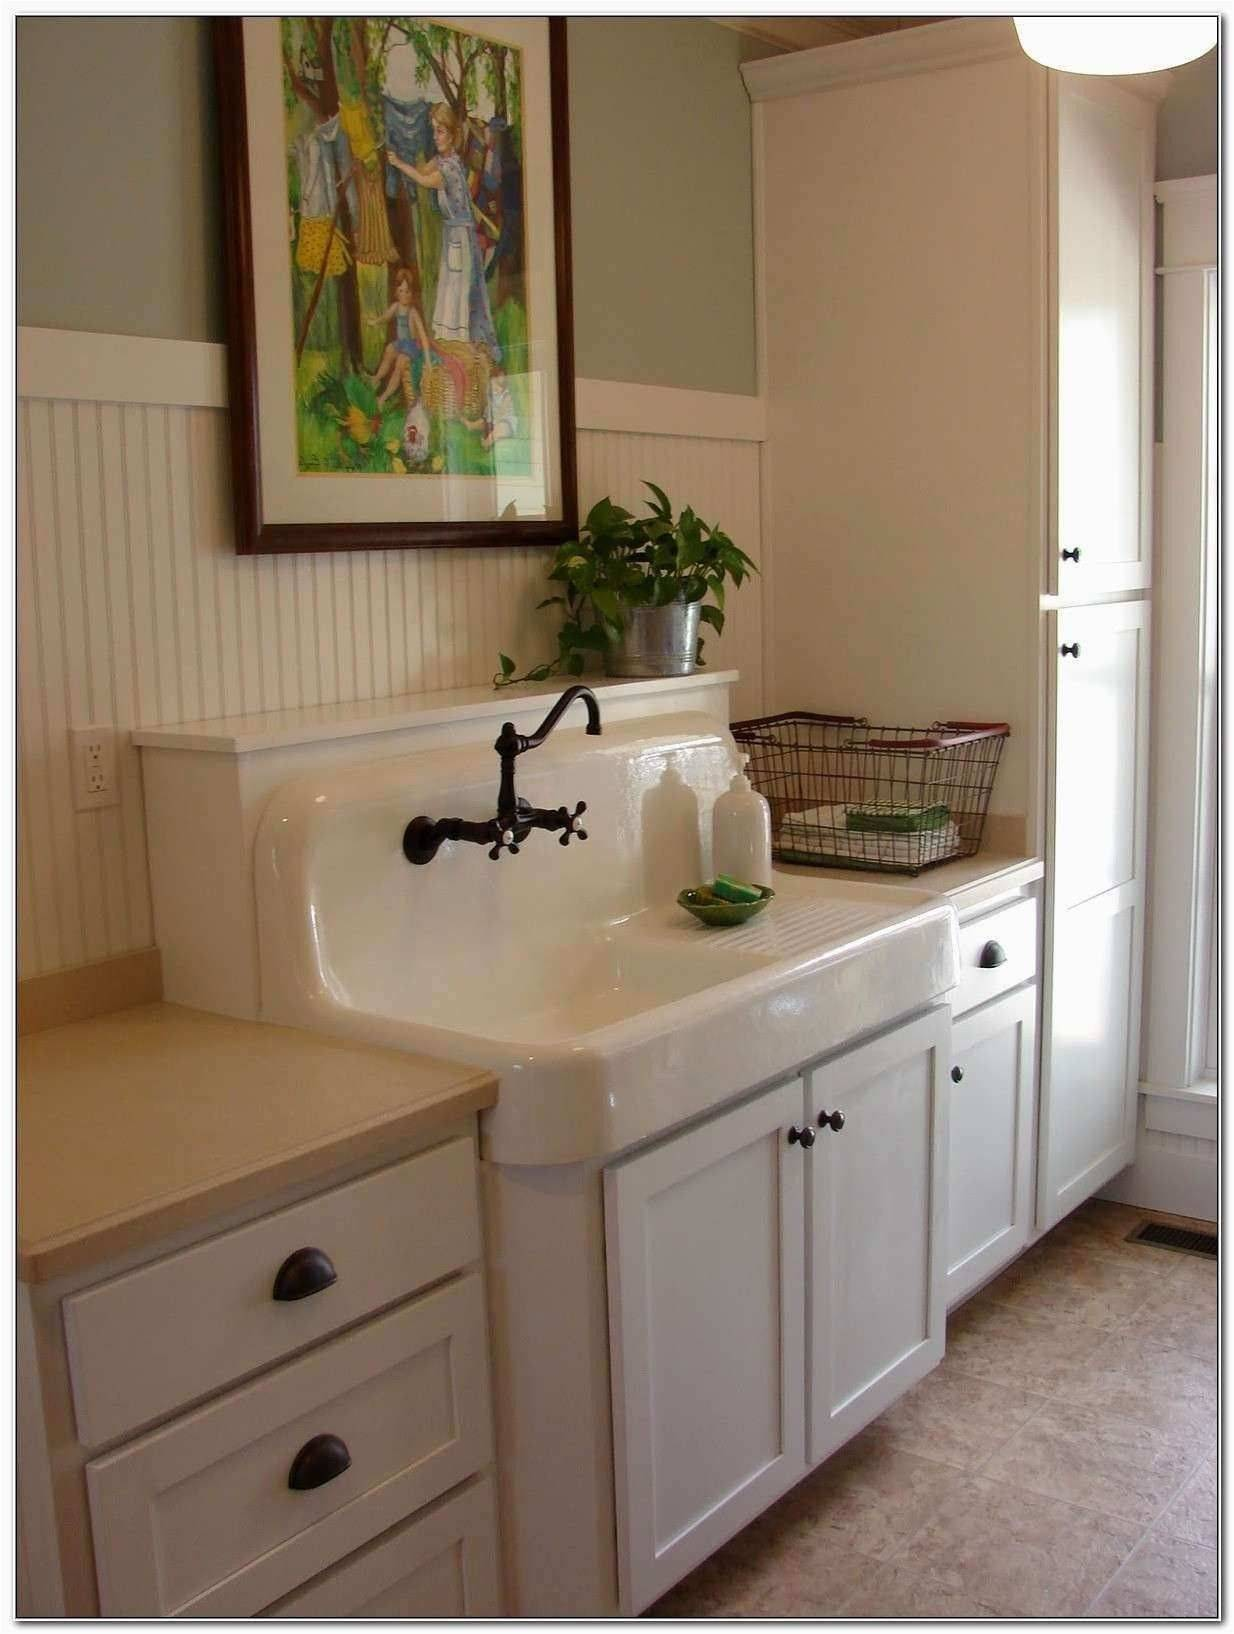 diy bathroom vanity plans also 5 lovely floating bathroom vanity of diy bathroom vanity plans